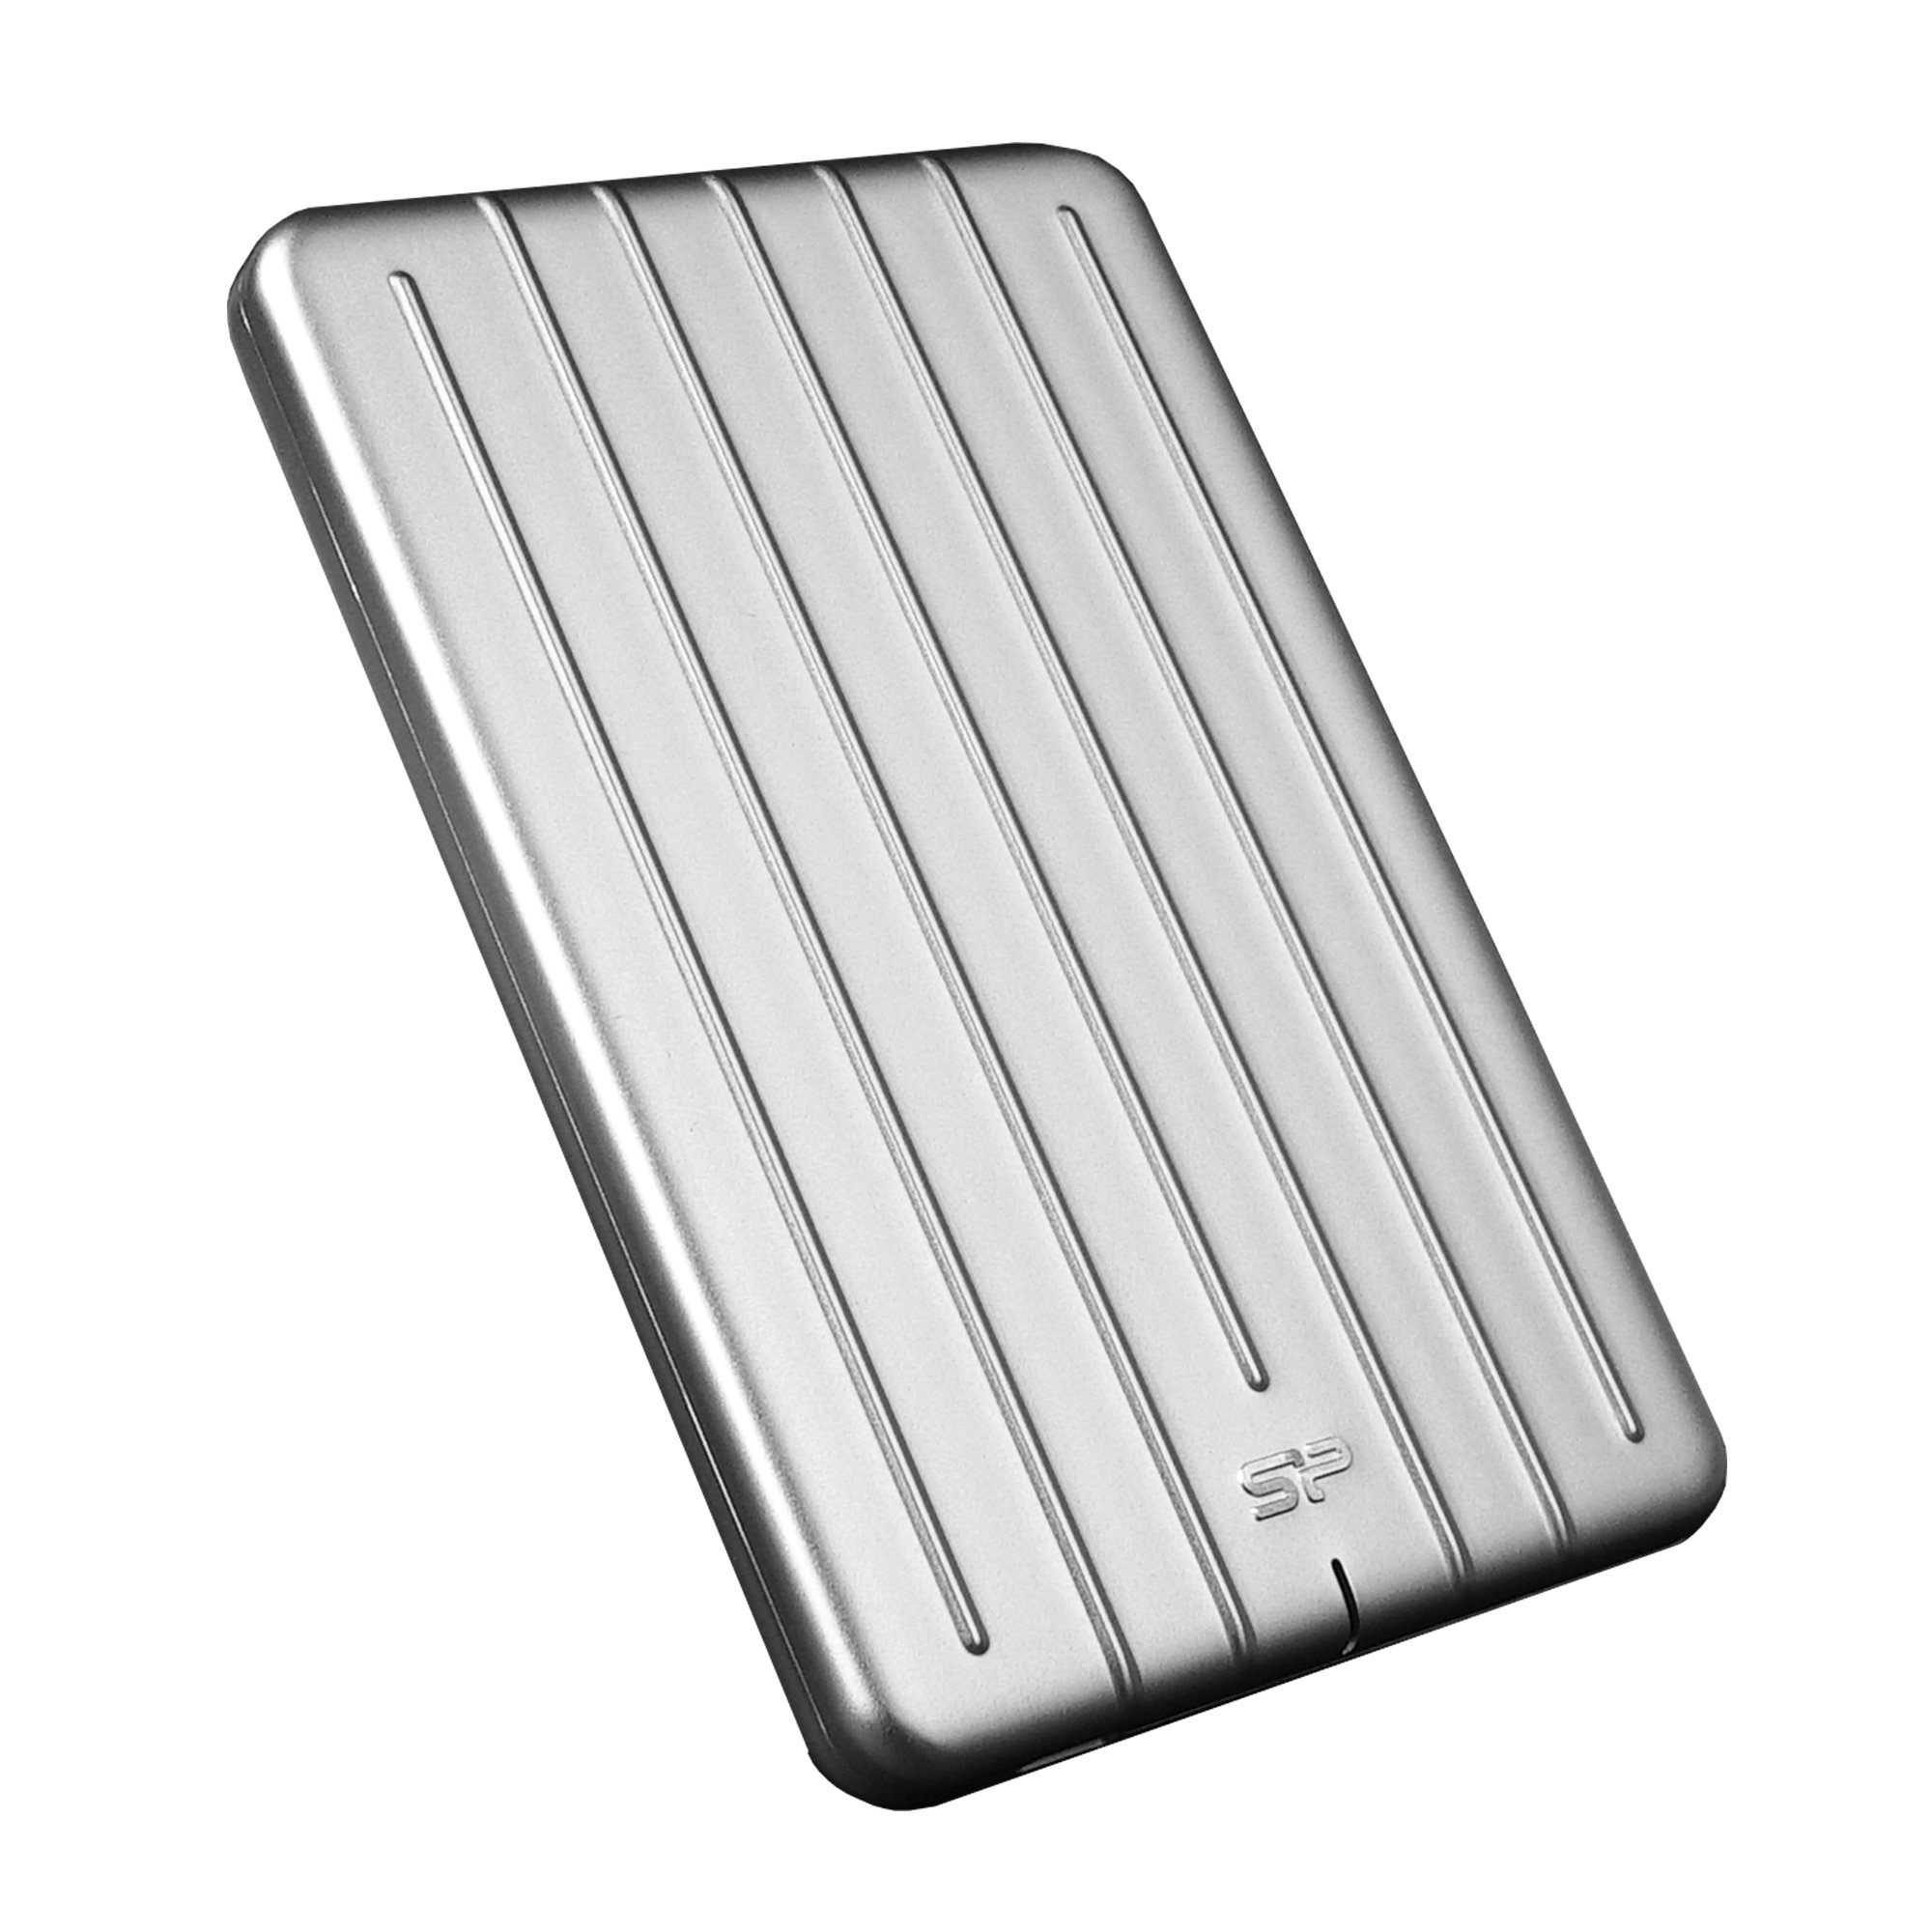 Silicon Power SU010TBPHDA75S3SAE 1TB Ultra Slim Rugged Armor A75 Shockproof USB 3.0 (USB 3.1 Gen 1) 2.5'' Portable External Hard Drive, Silver by Silicon Power (Image #8)